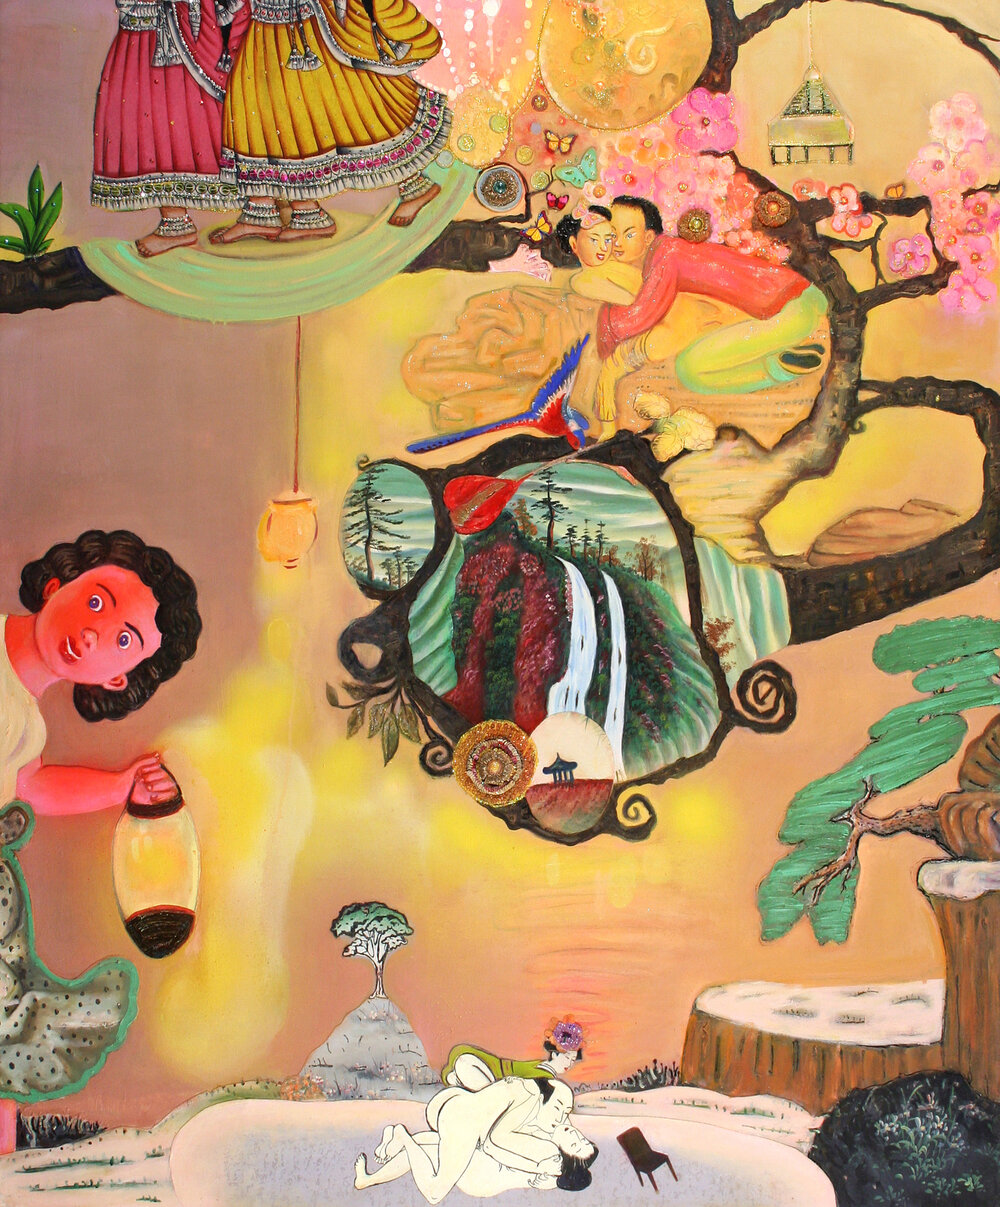 "As Seen in the Night, 60"" × 50"", mixed media and collage on canvas, 2005"